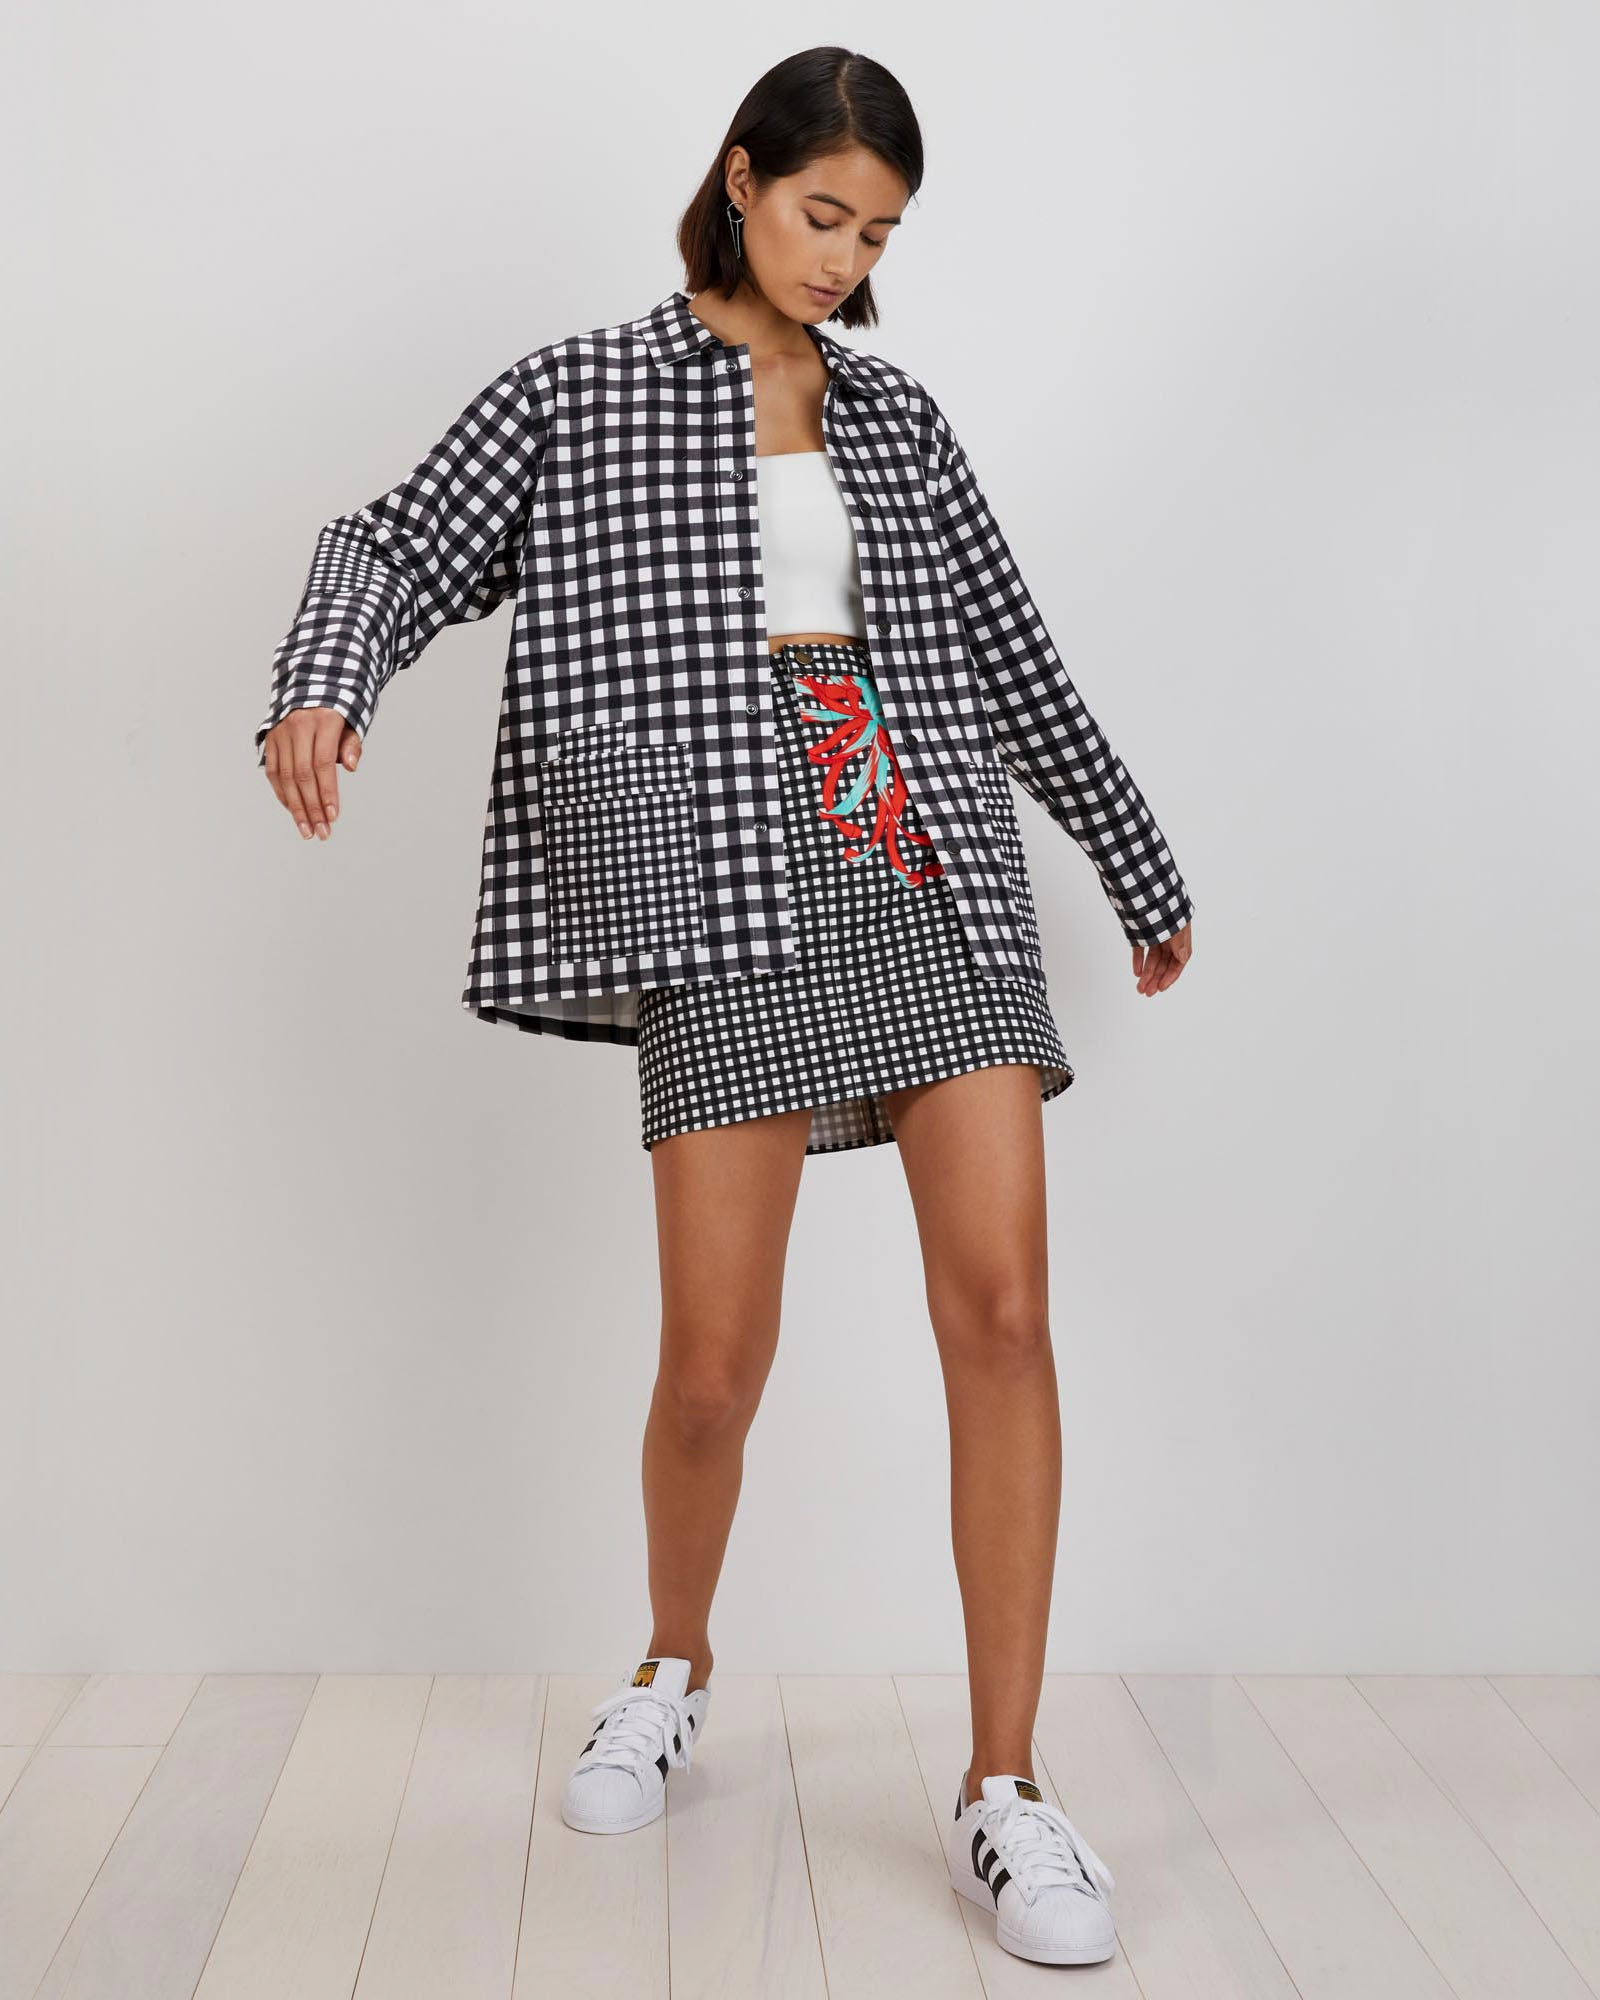 Painter's Jacket | Black Micro Gingham